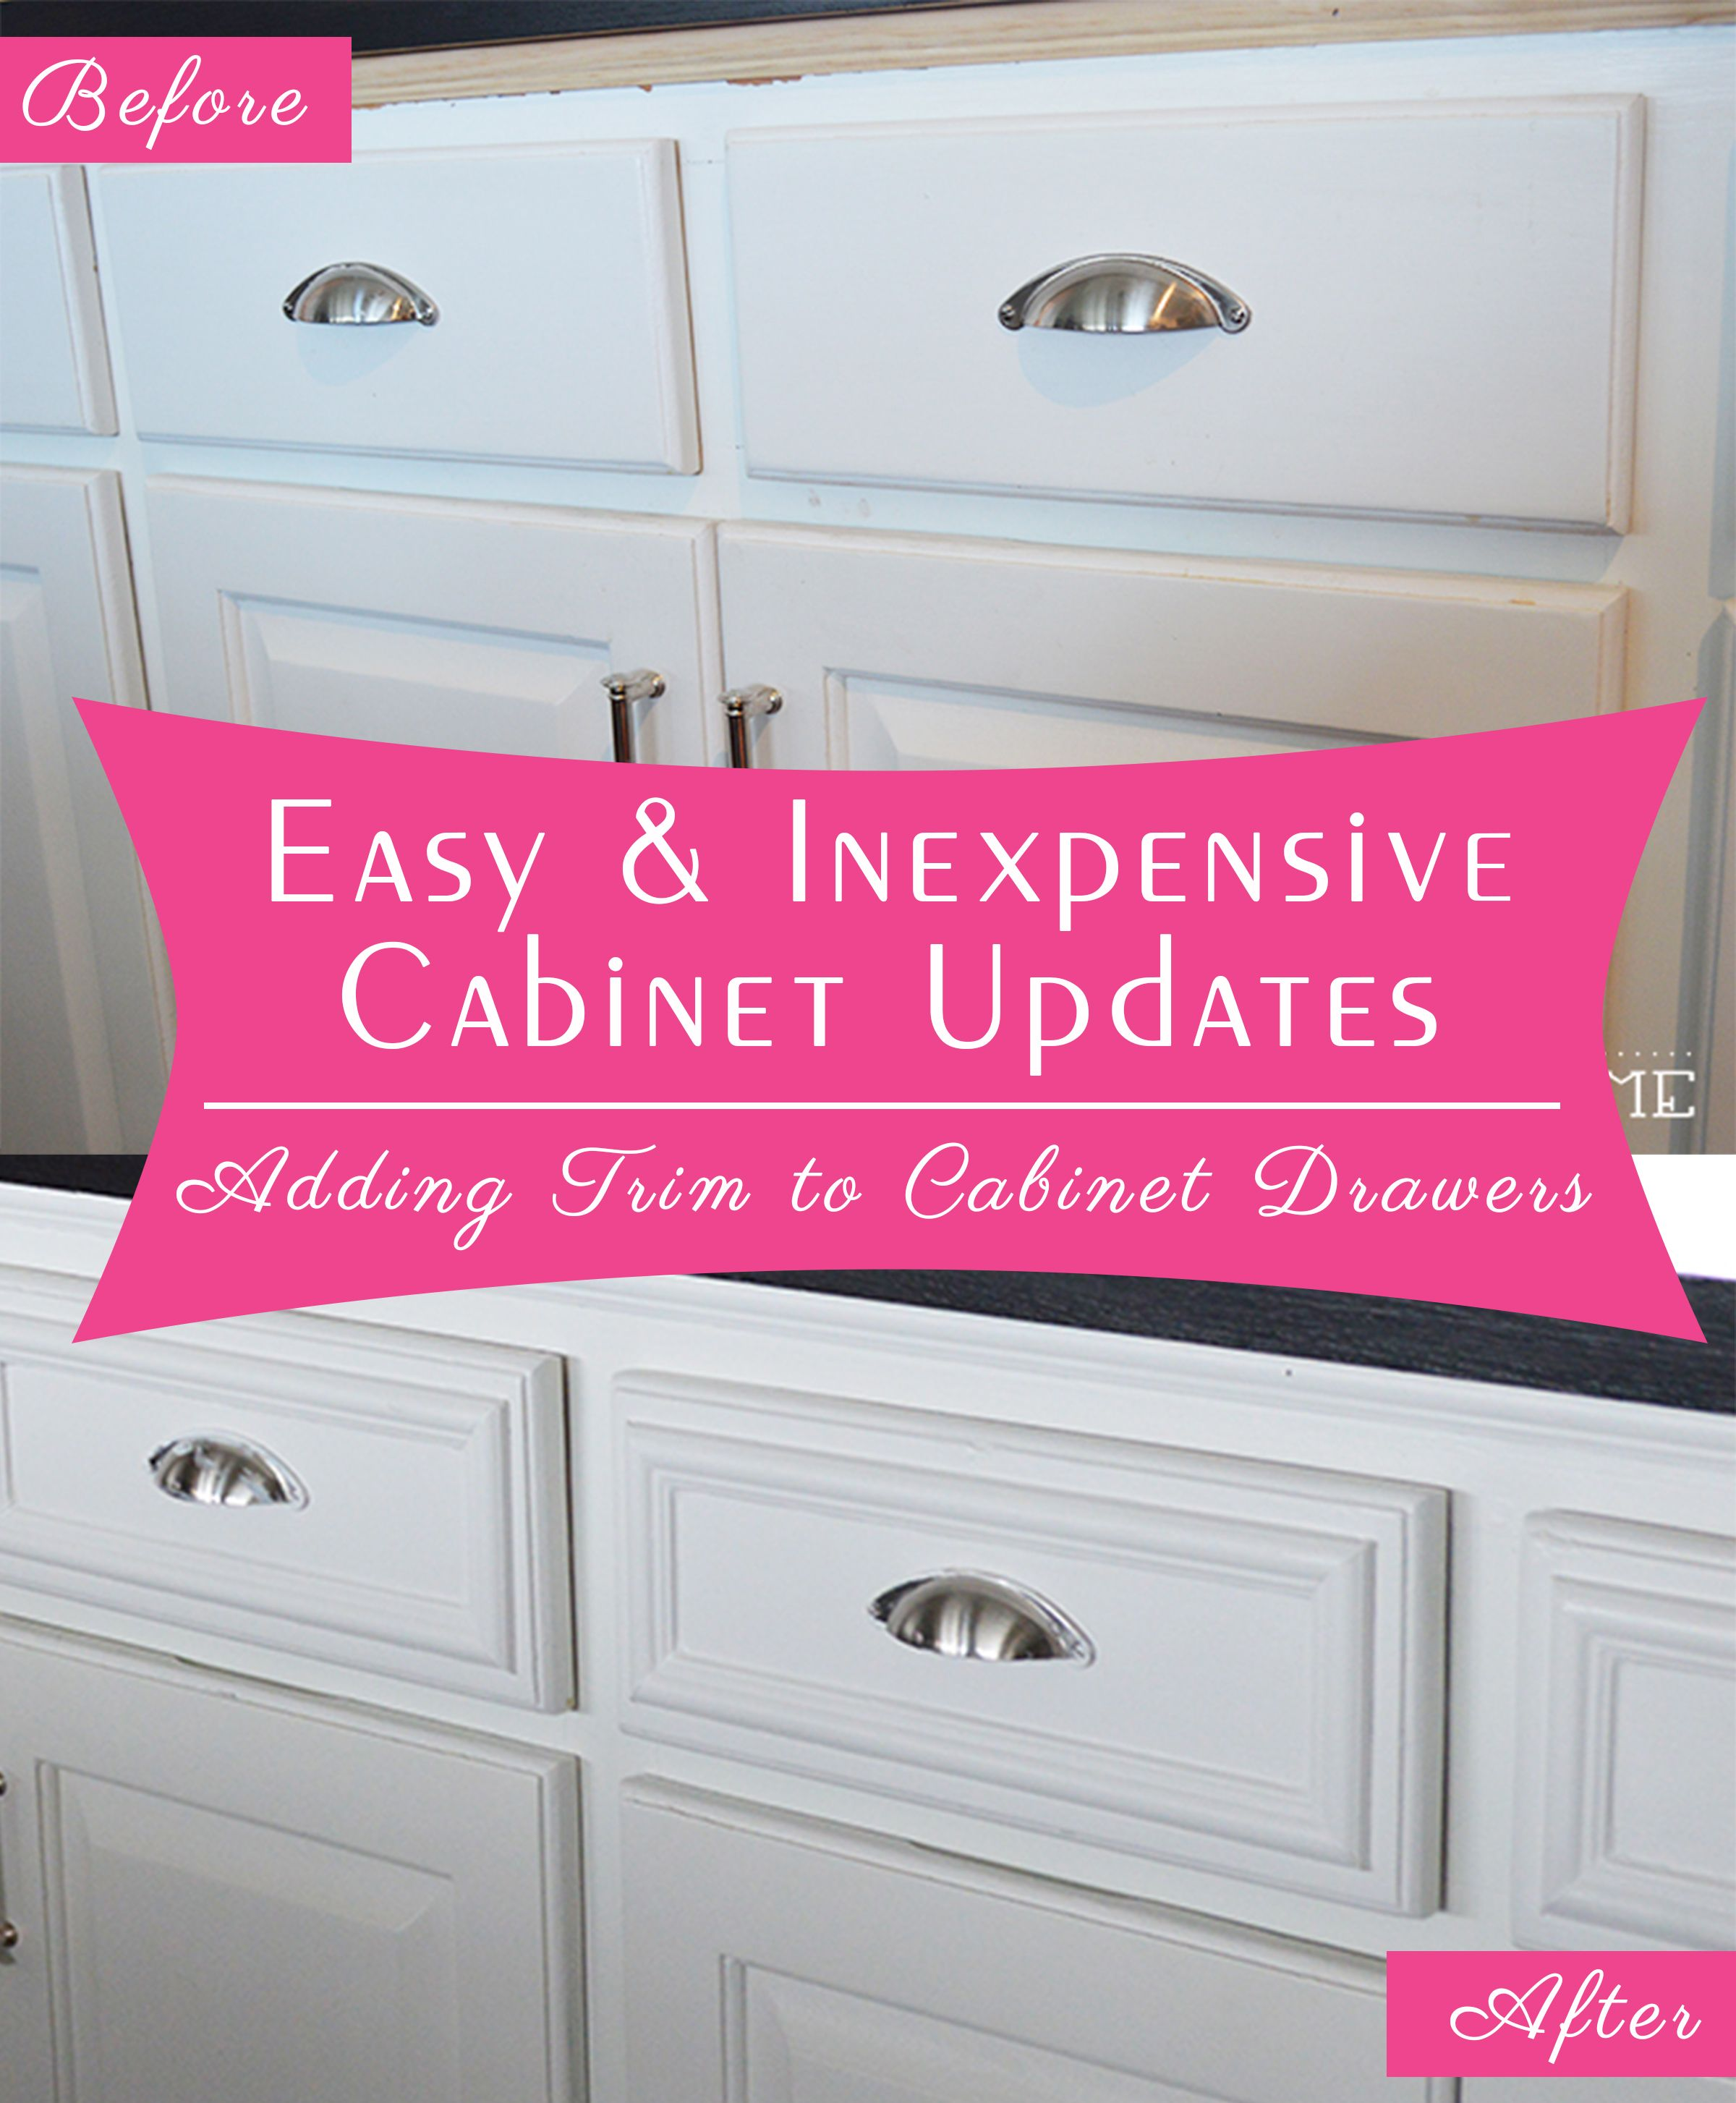 kitchen cabinet updates Easy and Inexpensive Cabinet Updates Adding Trim to Cabinets Drawers